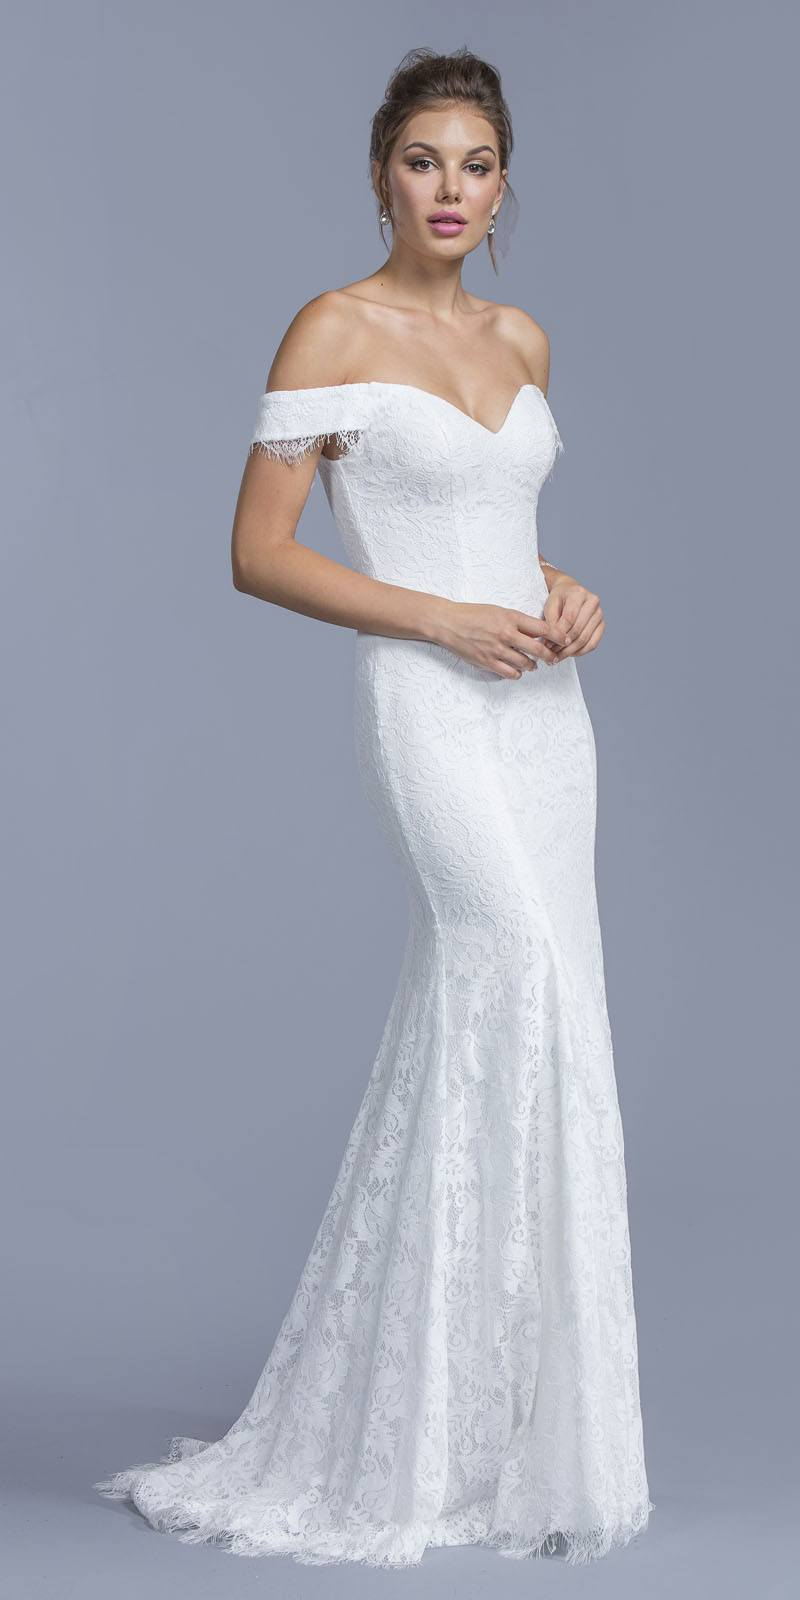 6becd9106c56 Aspeed USA L1947 White Mermaid Lace Wedding Gown Off-Shoulder ...